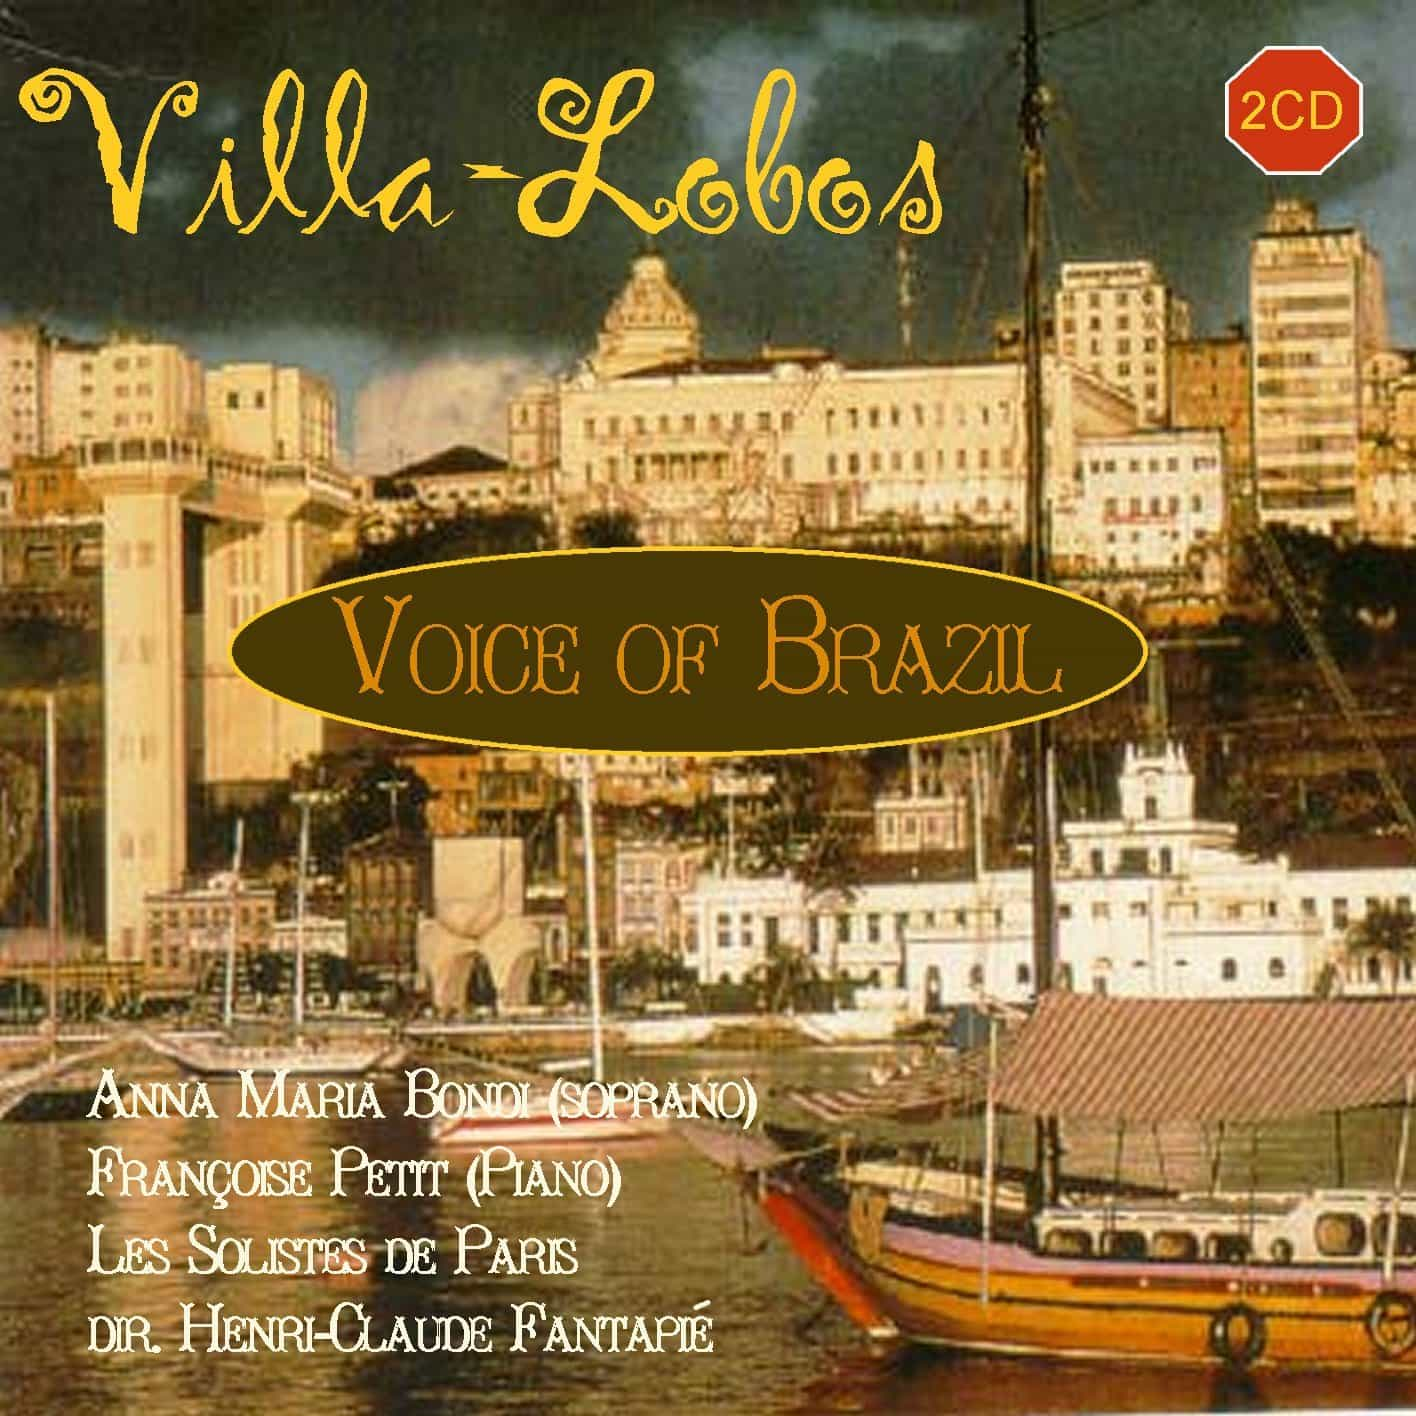 Villa-Lobos: Voice of Brazil